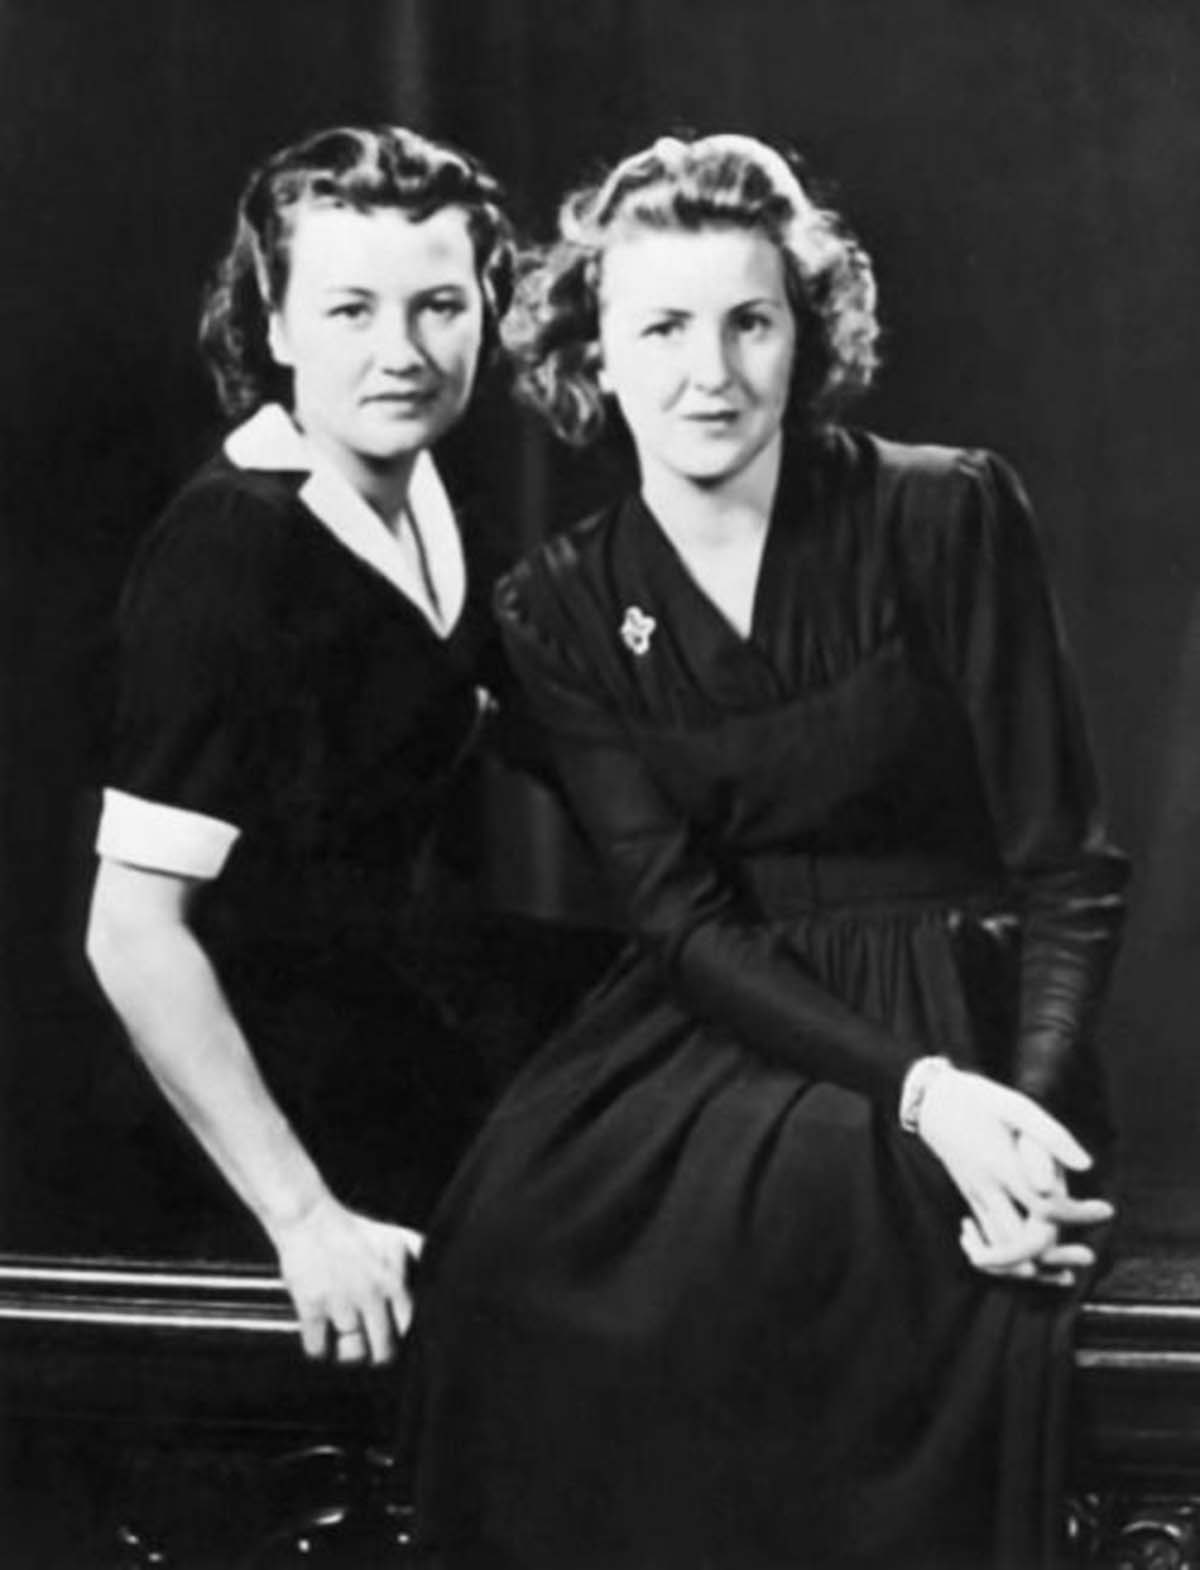 Herta Schneider and Eva Braun. An author who claims to have seen private documents asserts that Eva wrote at least two final letters from the bunker to Herta, who survived the war.